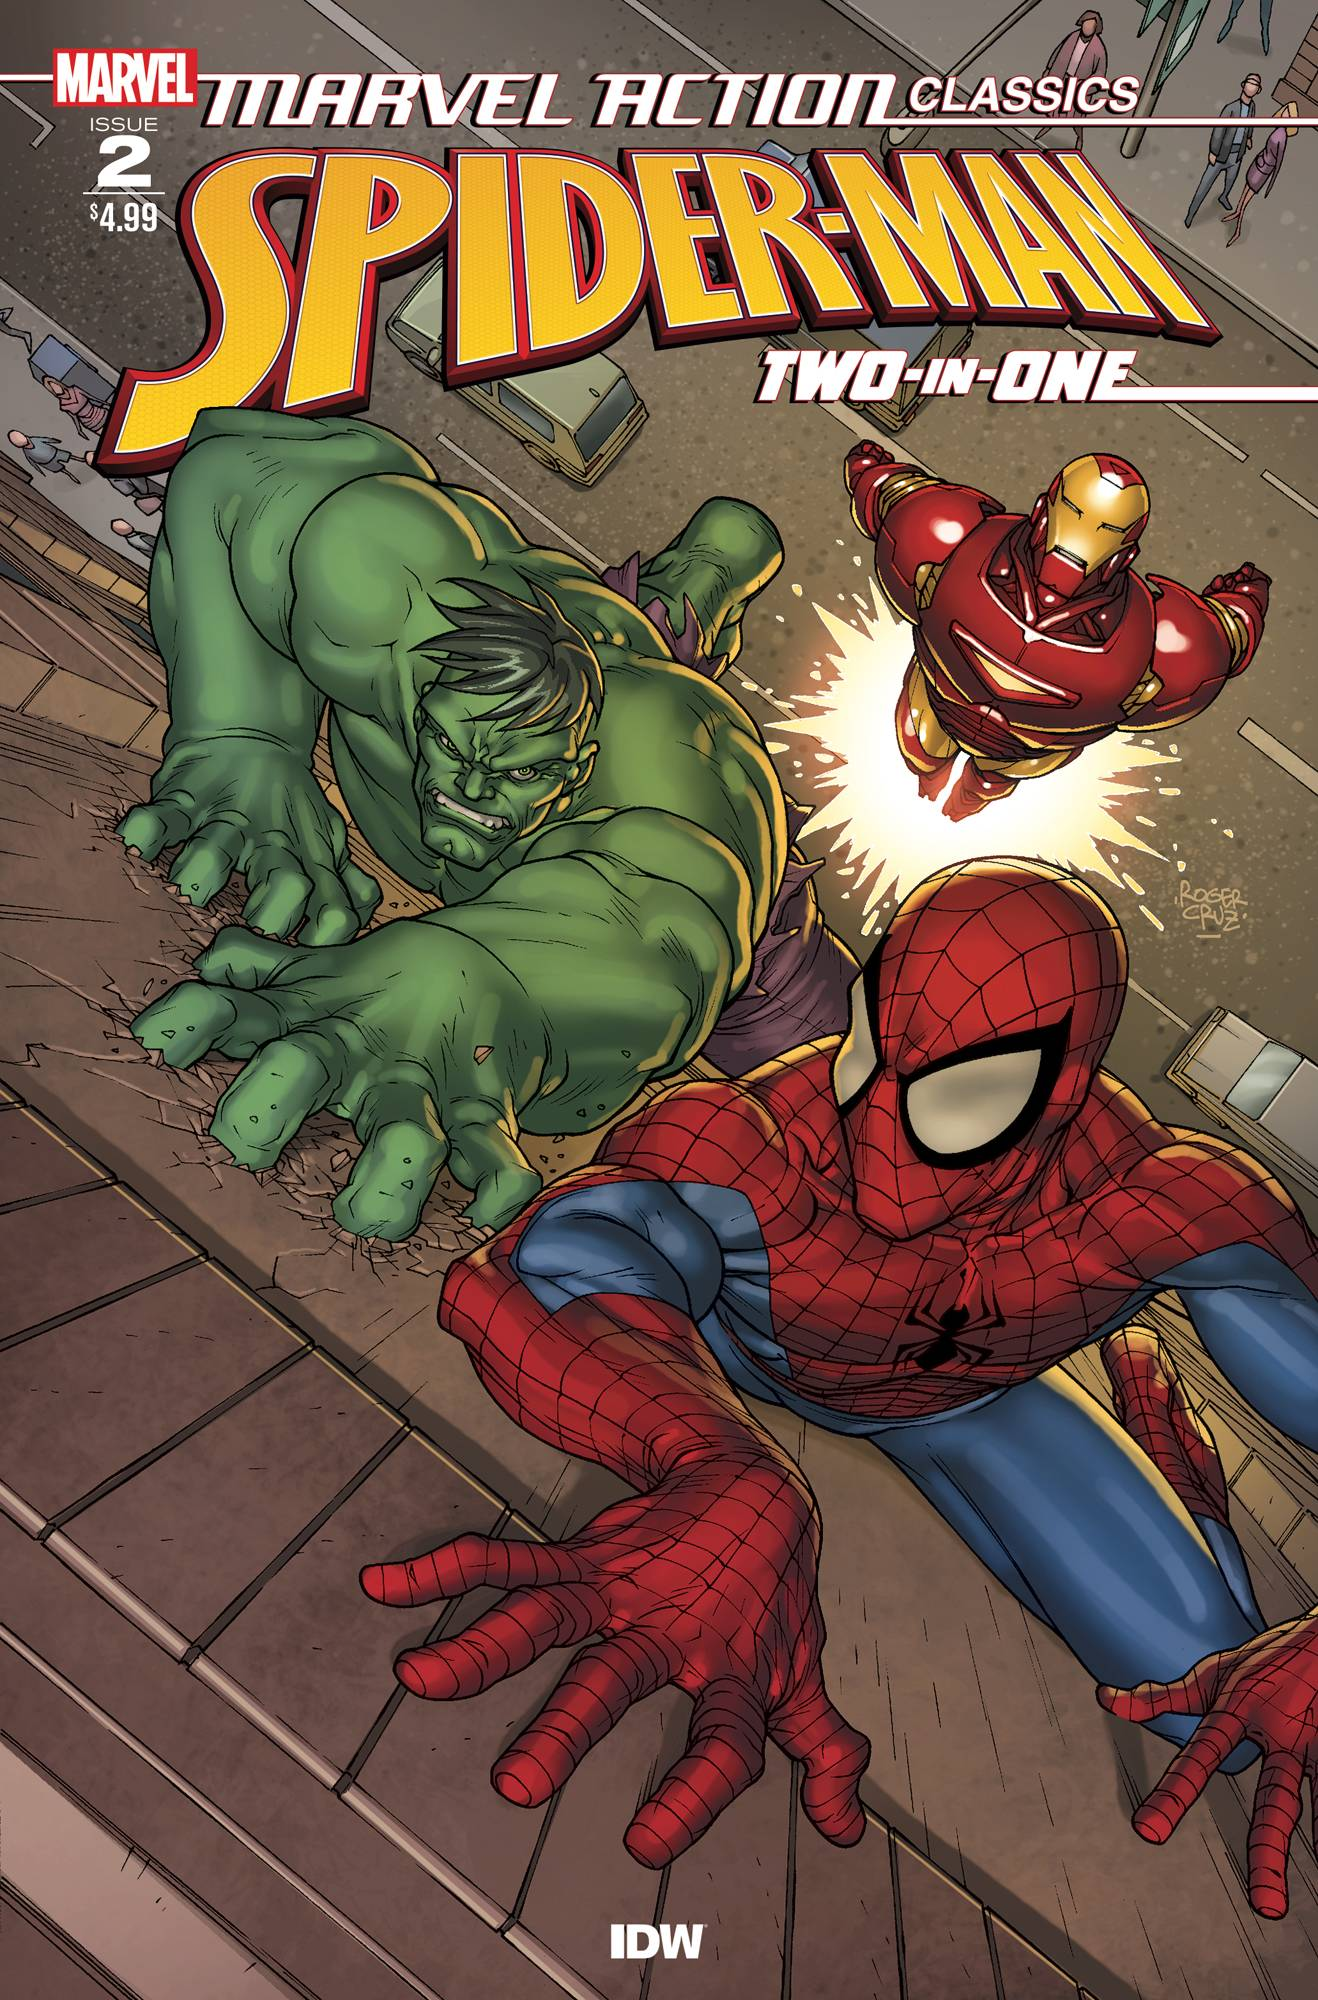 Marvel Action Classics: Spider-Man Two-In-One Vol 1 2